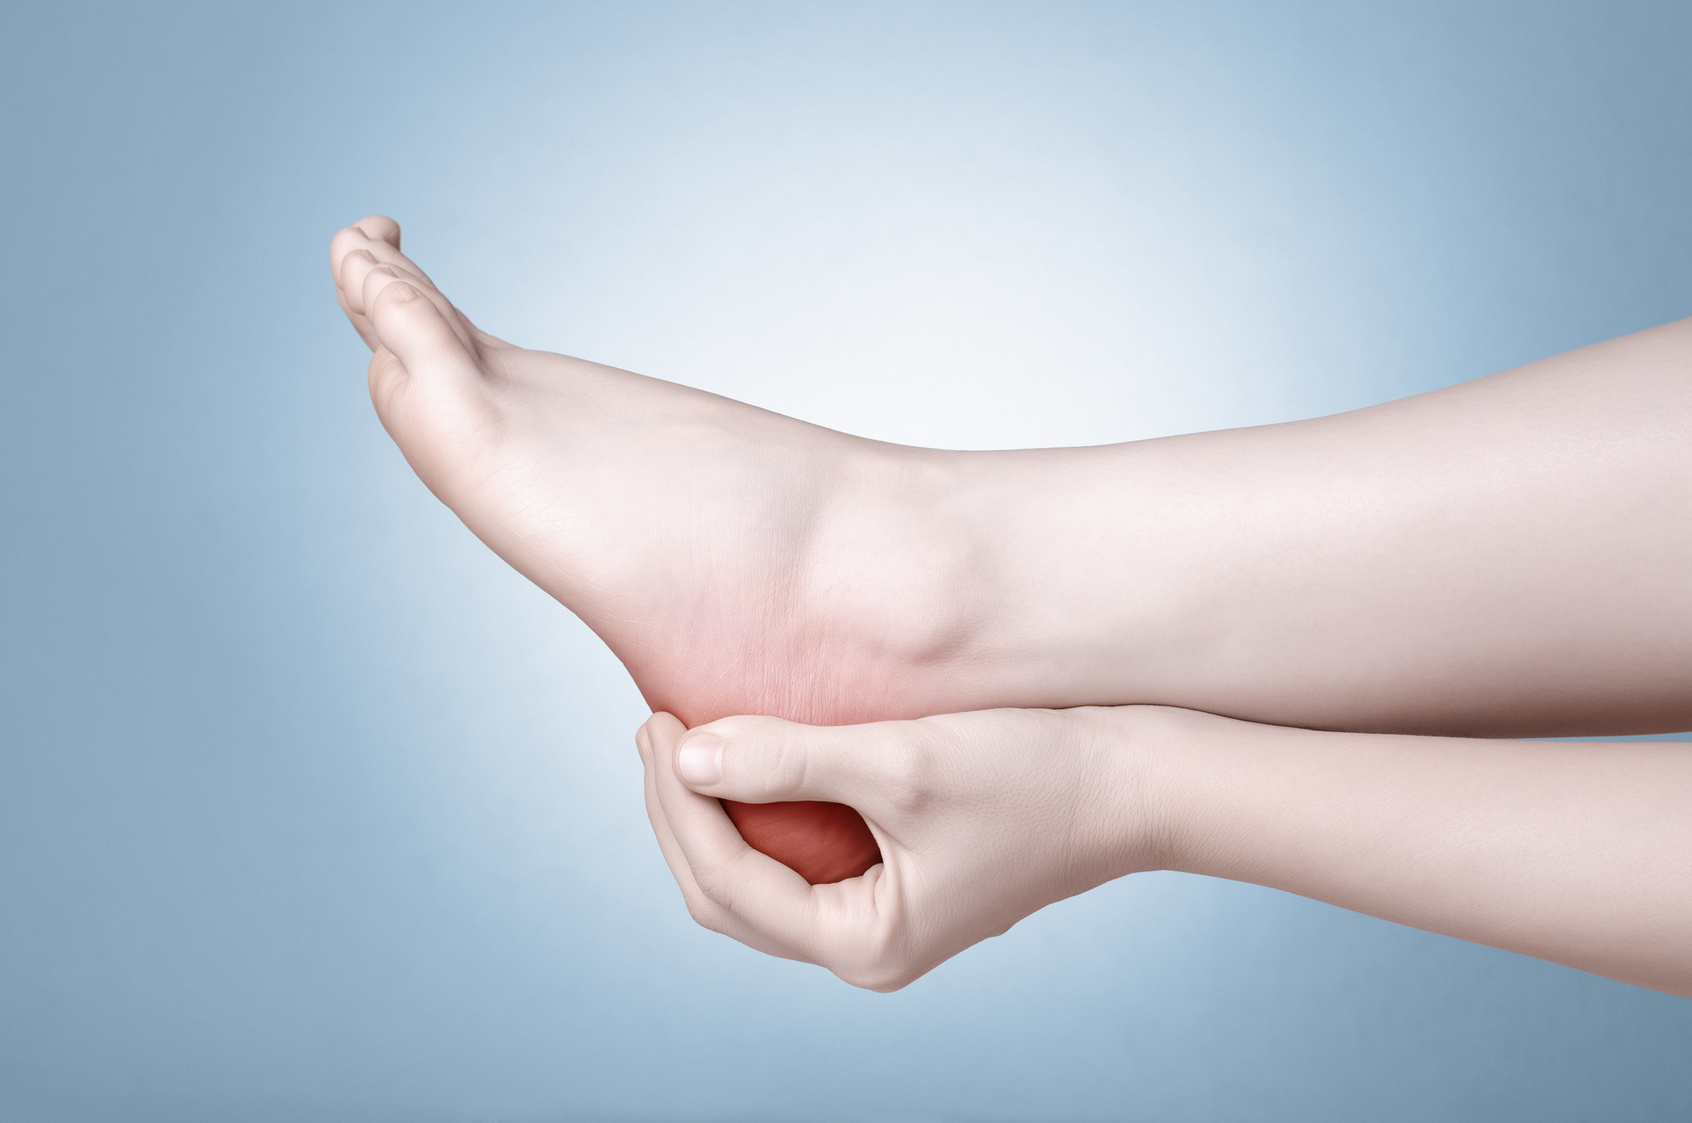 soreheel - Heel Pain and related conditions